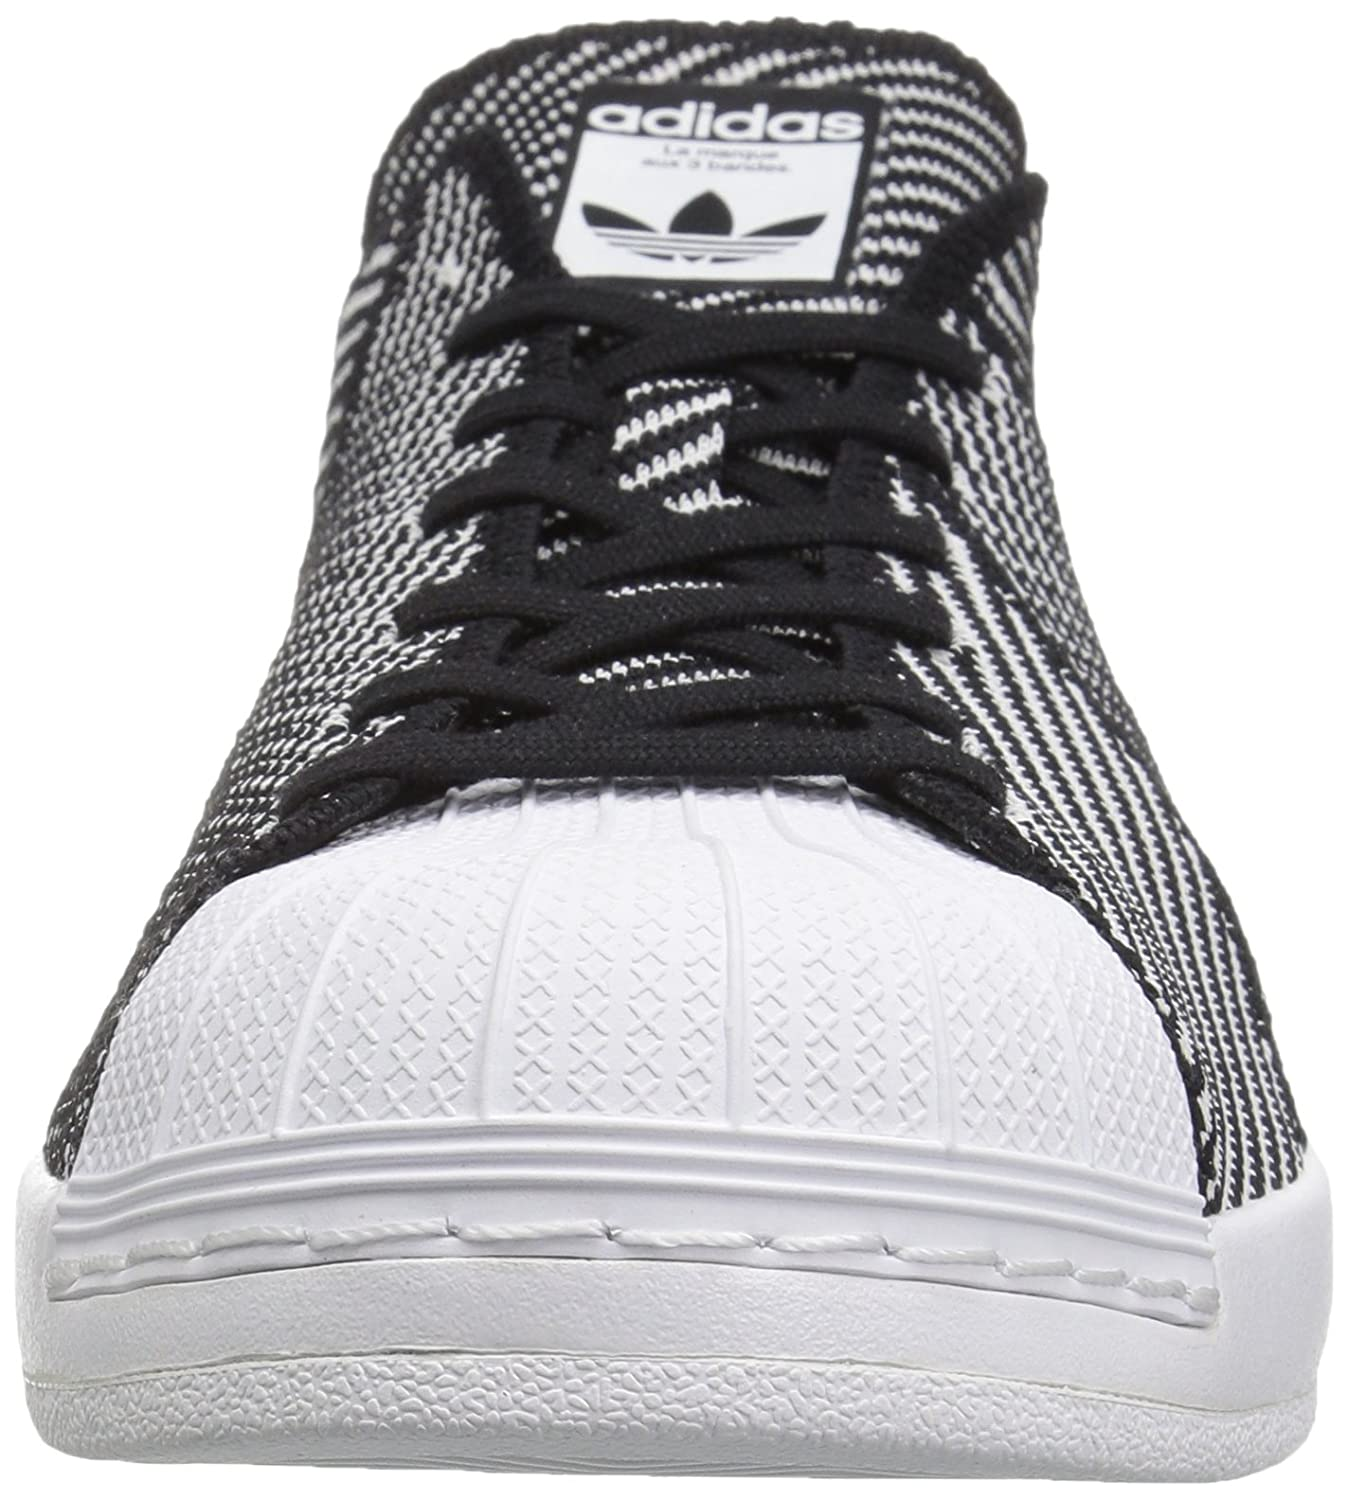 adidas adidas adidas Originals Men's Superstar Bounce Pk Fashion Shoes 12 M US|R Core Black / Running White Ftw / Running White Ftw B071Z36RWB 63ce13